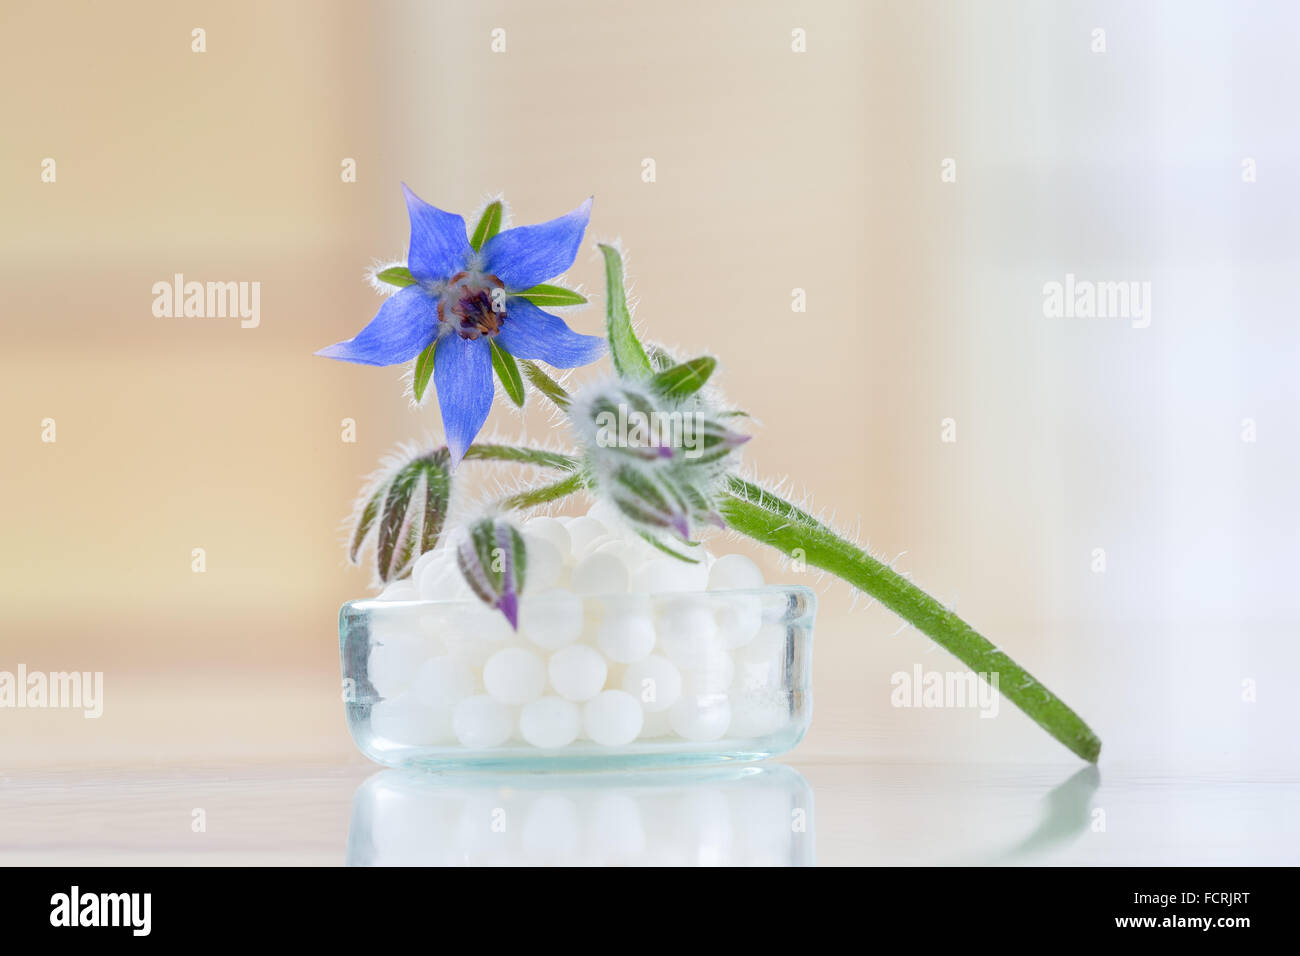 Homeopathy globules with borage flower - Stock Image